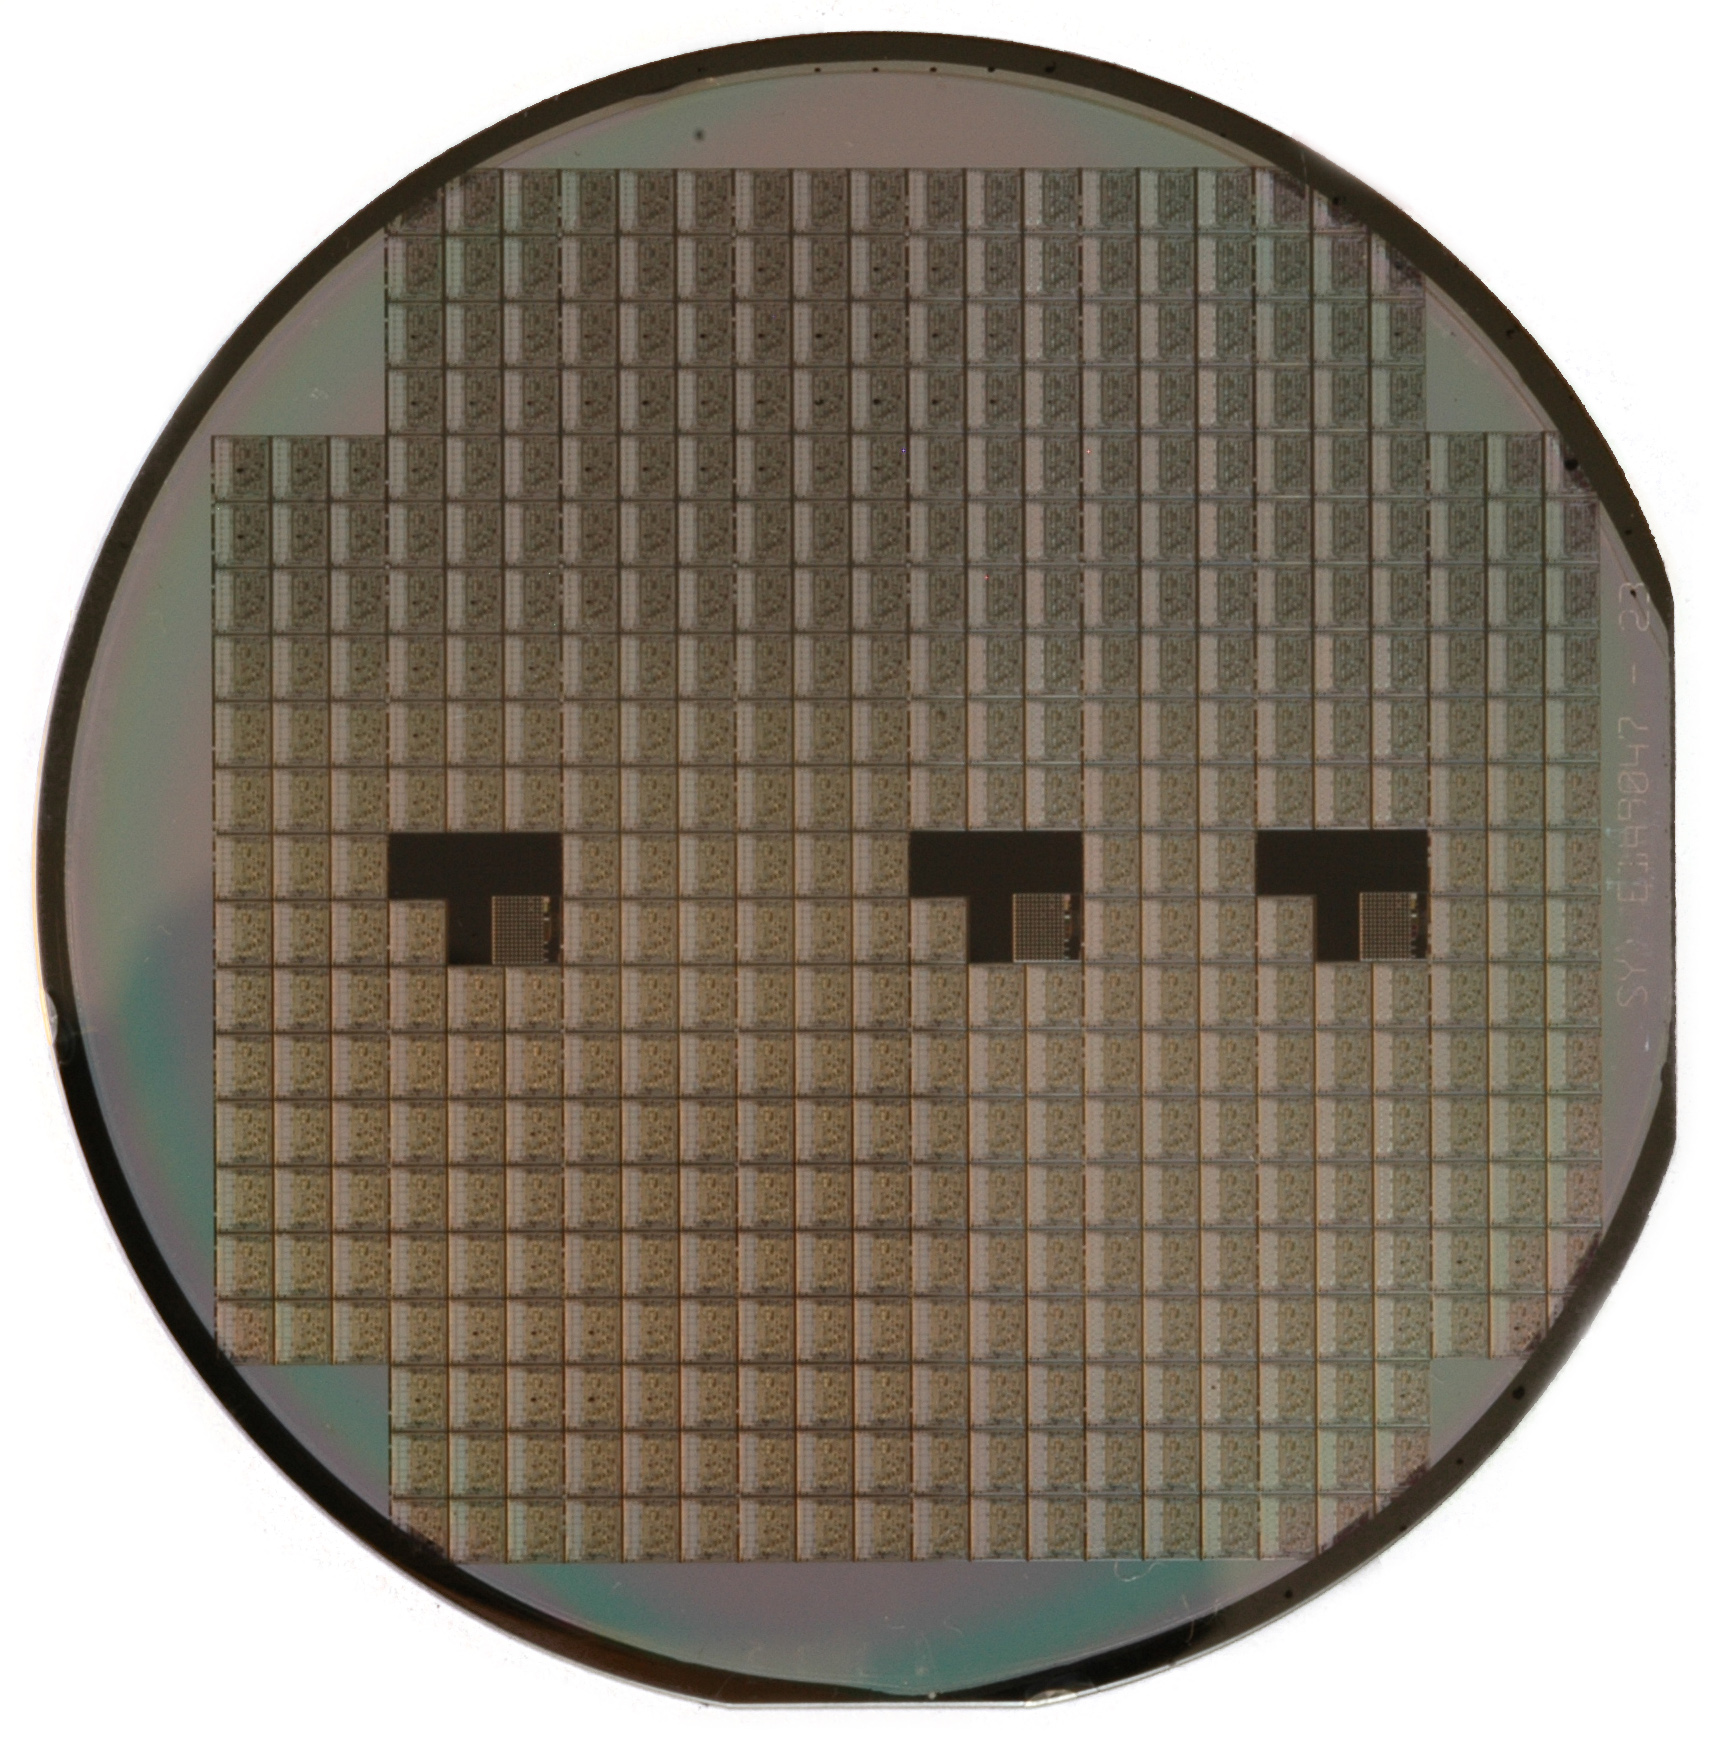 Filesilicon Wafer Wikimedia Commons The History Of Integrated Circuits And Microchips Thumbnail For Version As 1657 7 April 2010